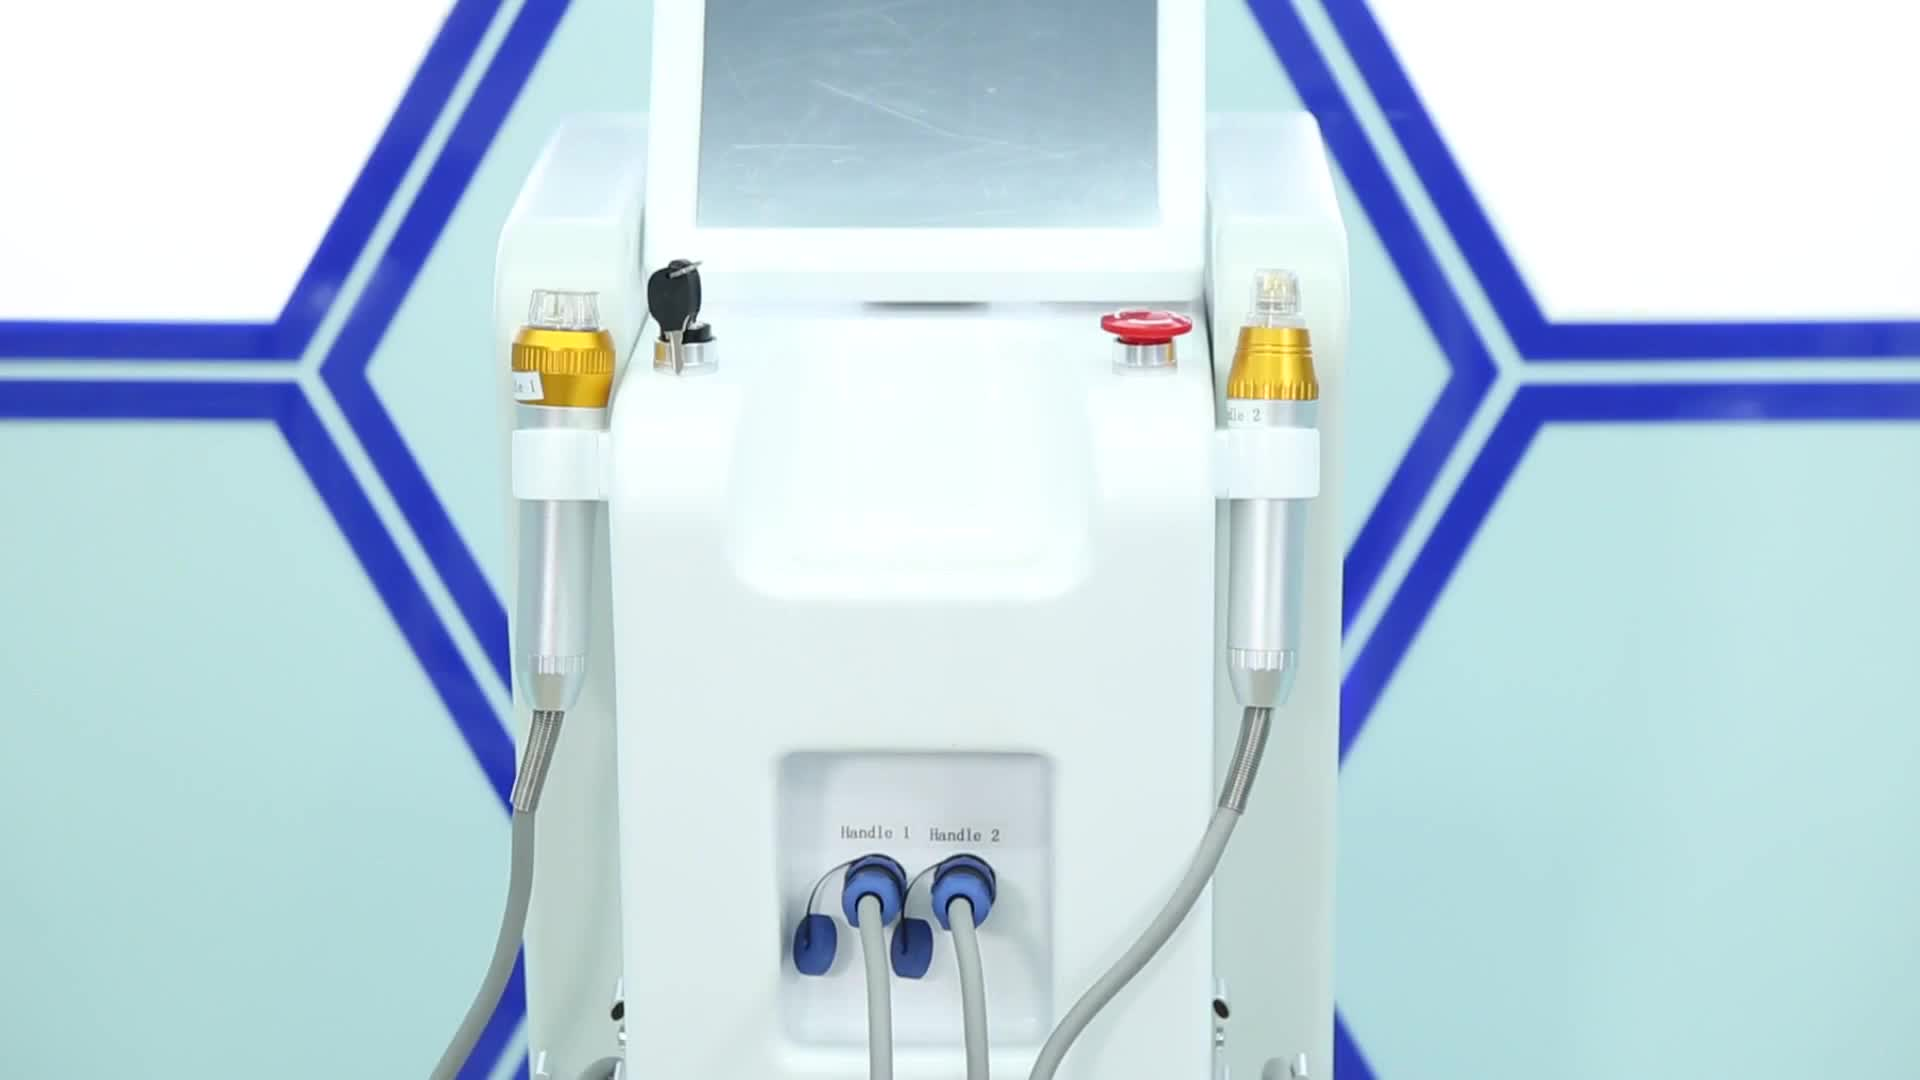 Hot Sale Rf Microneedle Skin Fractional Rf Radio Frequency Face Lifting Radiofrequency Beauty Equipment